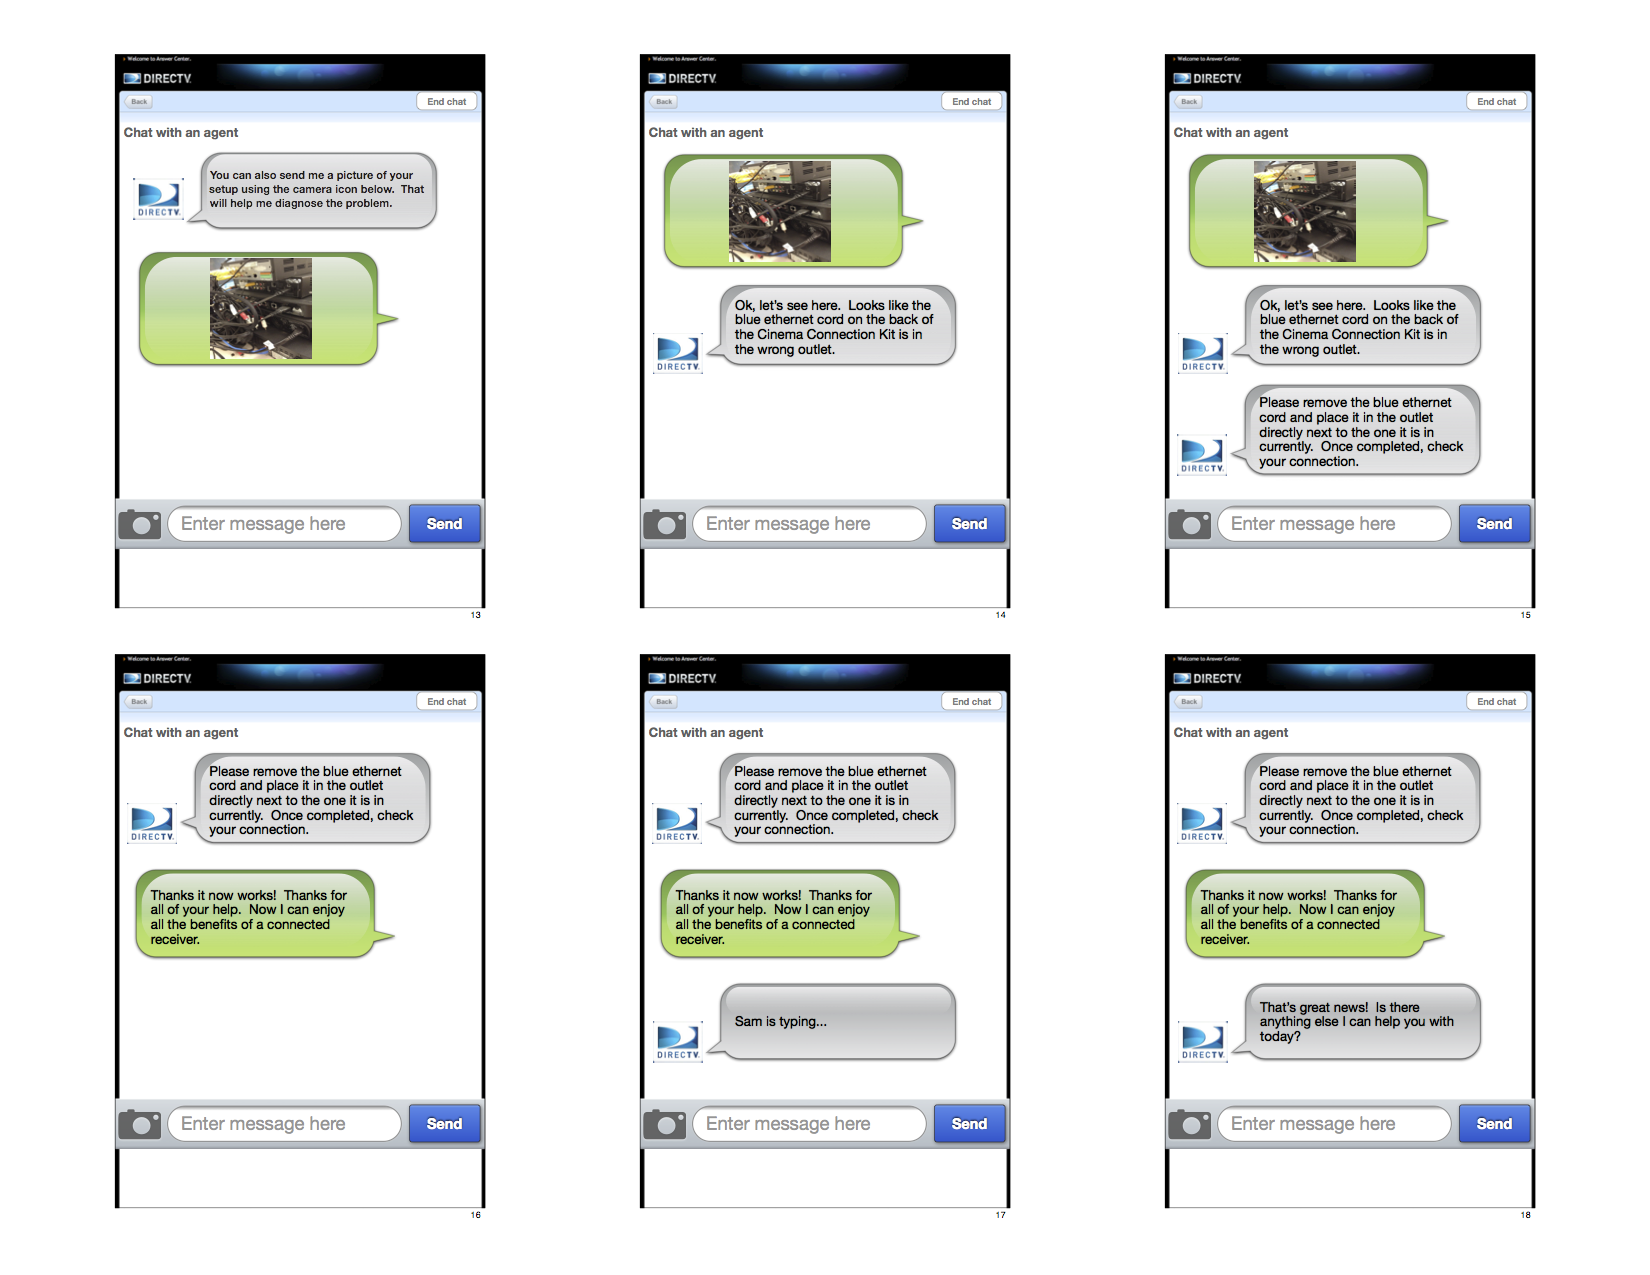 An interactive prototype (made with Keynote), used in testing to simulate chat on a mobile device.